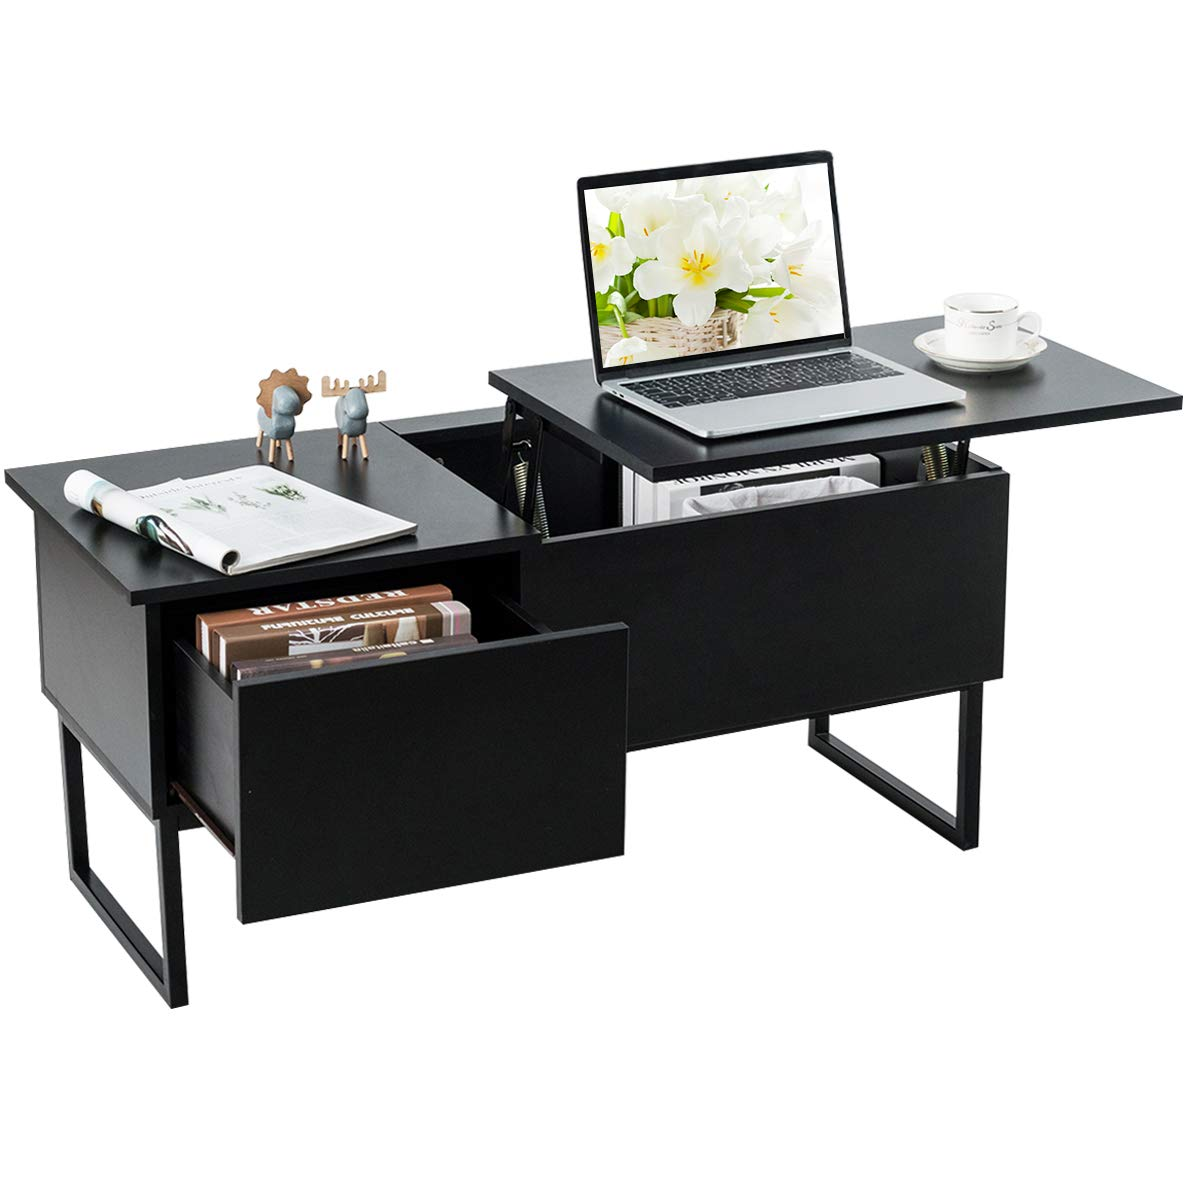 TANGKULA Lift Top Coffee Table, Modern Storage Coffee Table w/Hidden Compartment Lift Tabletop Furniture, Built-in Spring and Desktop Height Adjustable, Suitable for Home Living Room(Black) by Tangkula